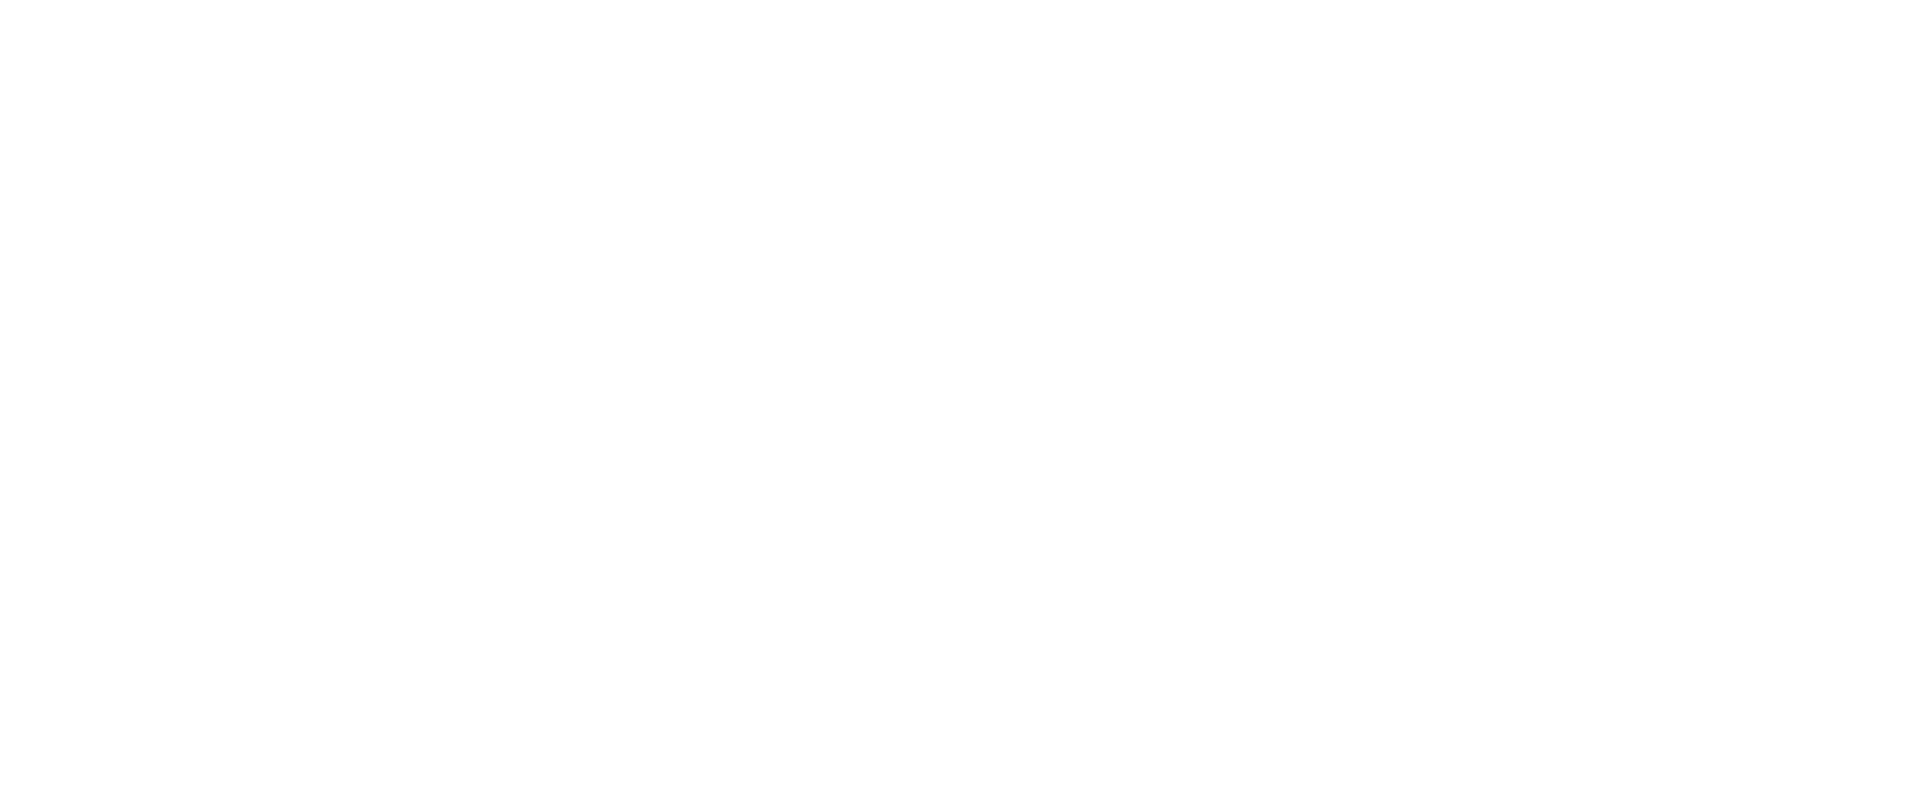 Swiss Startup Association Big